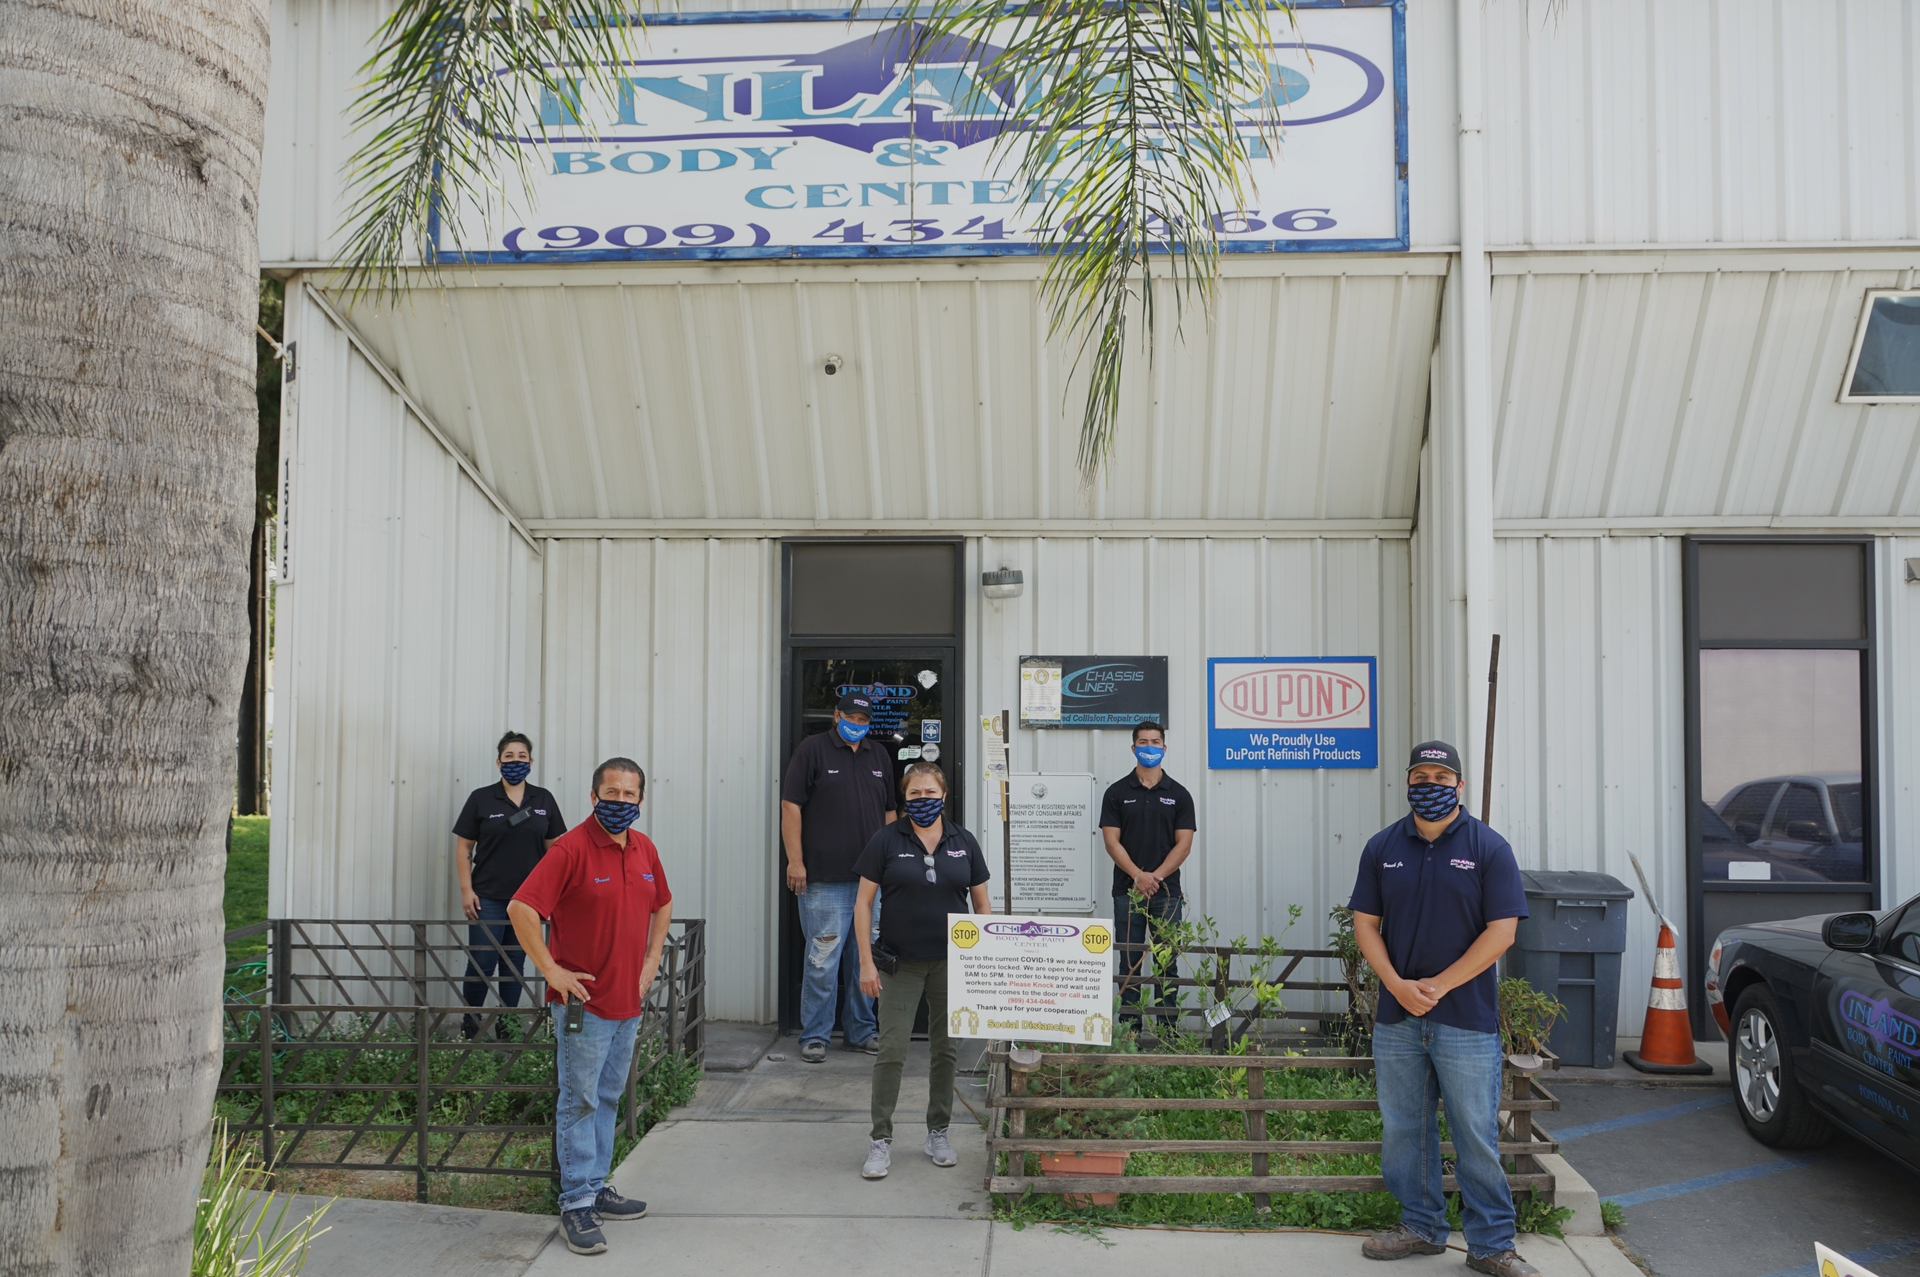 The state's Shop Safe Shop Local campaign encourages Californians to support small businesses like the Inland Body and Paint Center in Fontana.